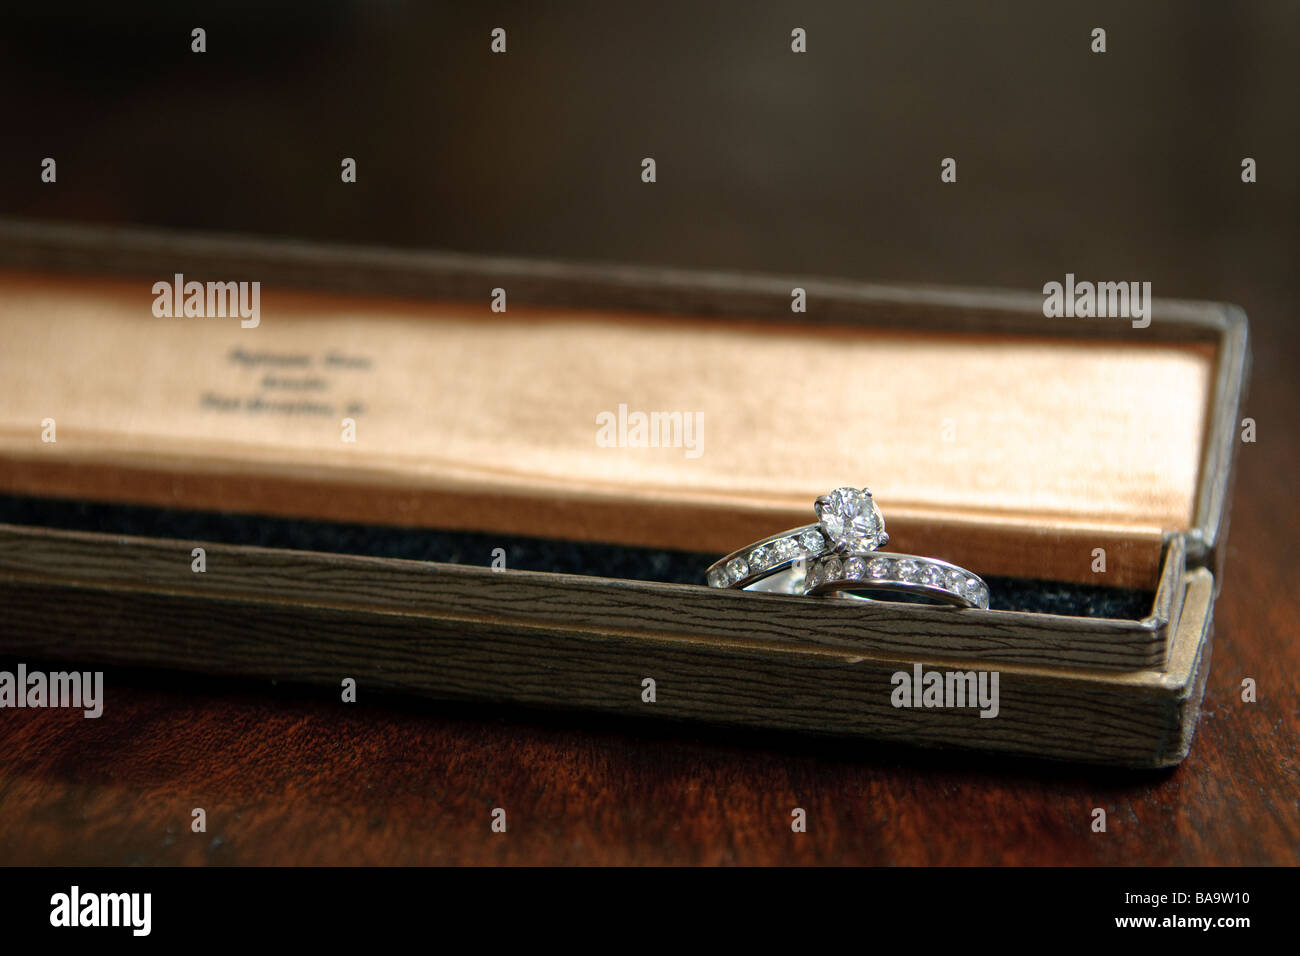 A diamond and platinum womens wedding ring set resting in a long jewelry box on a wooden table - Stock Image